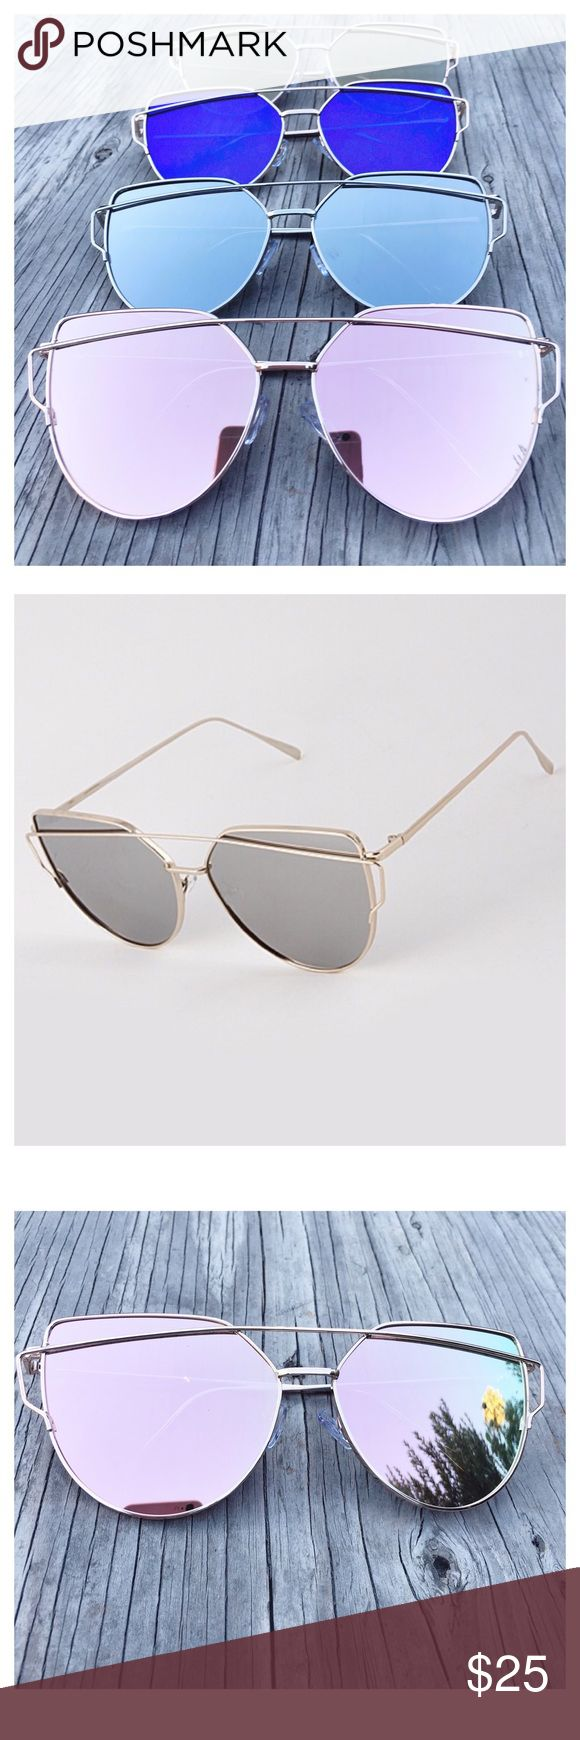 Flash Sale! Mirror Sunglasses, Cat Eye Sunglasses Cat Eye Aviator Sunglasses. This listing is for a pair of Cat Eye aviator sunshades. Retro. Wire sunglasses. Trending sunglasses. Available in: Rose Gold, Gold, Silver, and Blue. UV protection. Top quality! Brand new! Accessories Glasses